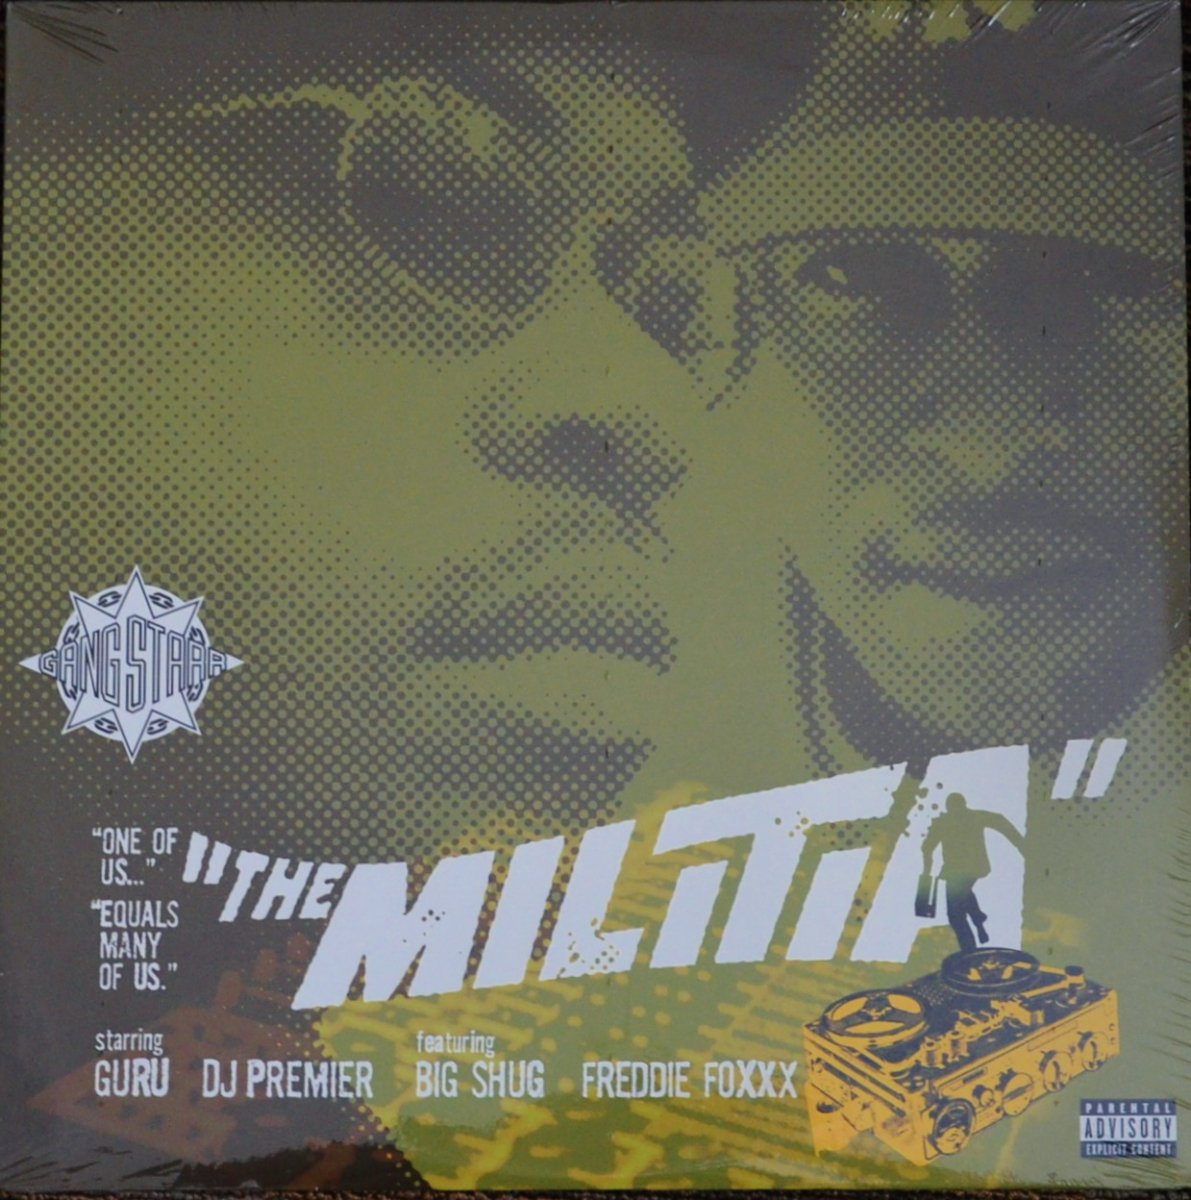 GANG STARR ‎/ THE MILITIA / YOU KNOW MY STEEZ (THREE MEN AND A LADY REMIX) (12